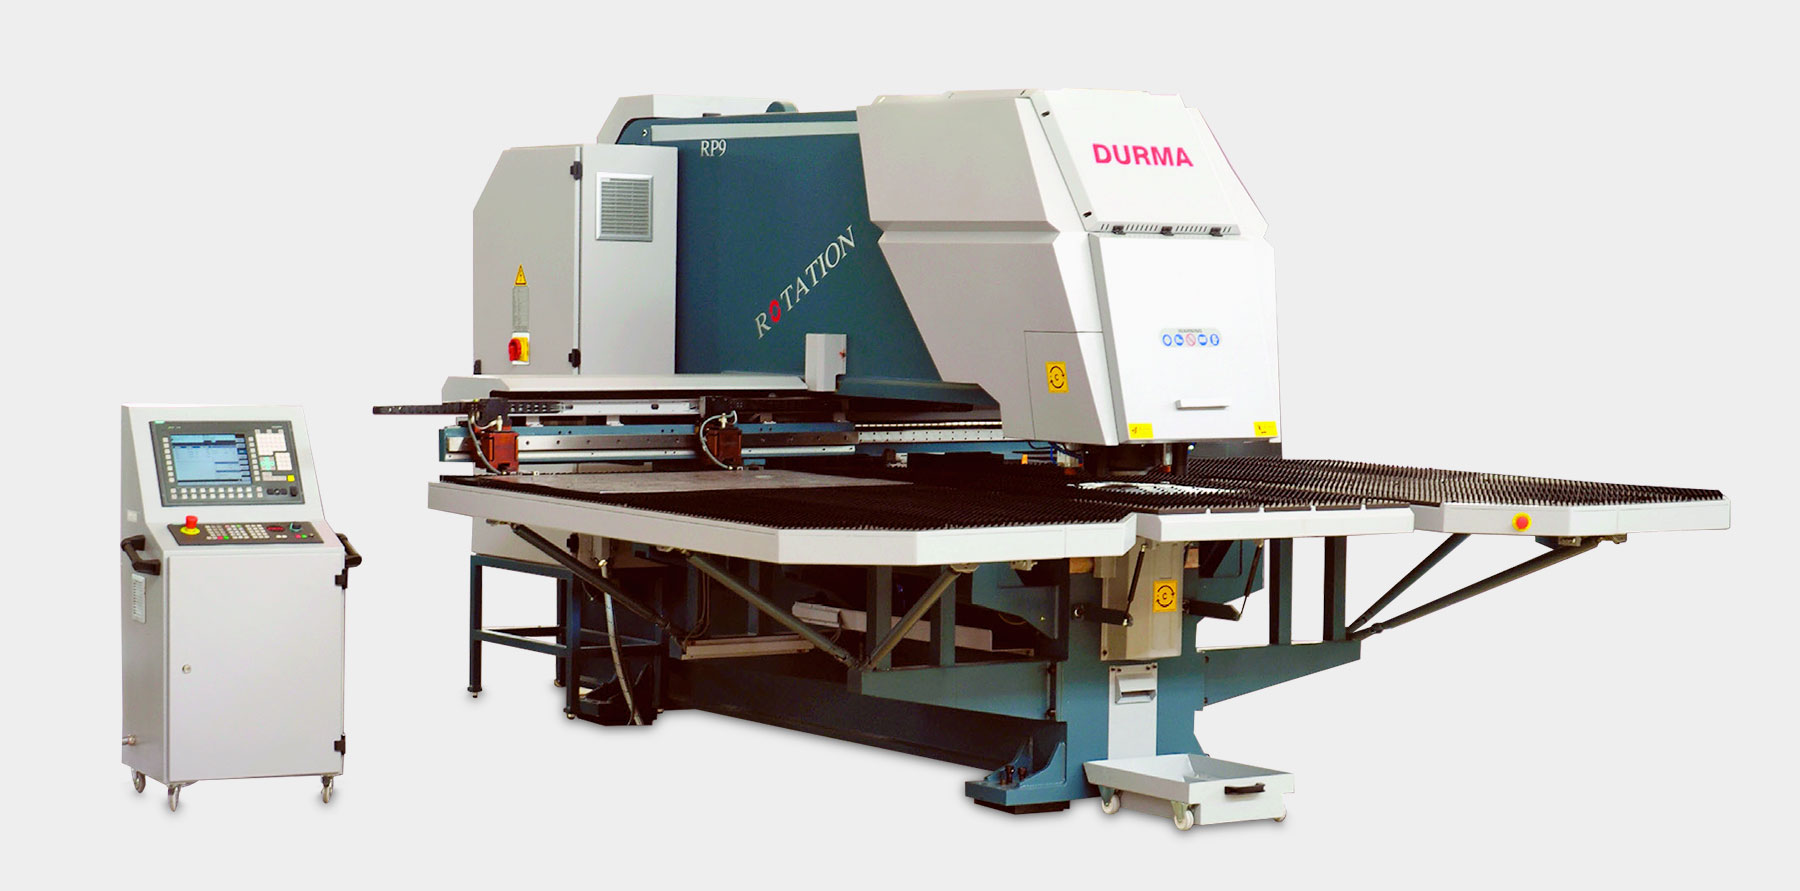 Durma Fixed & Rotation Punching Machines Durma FP/RP Series